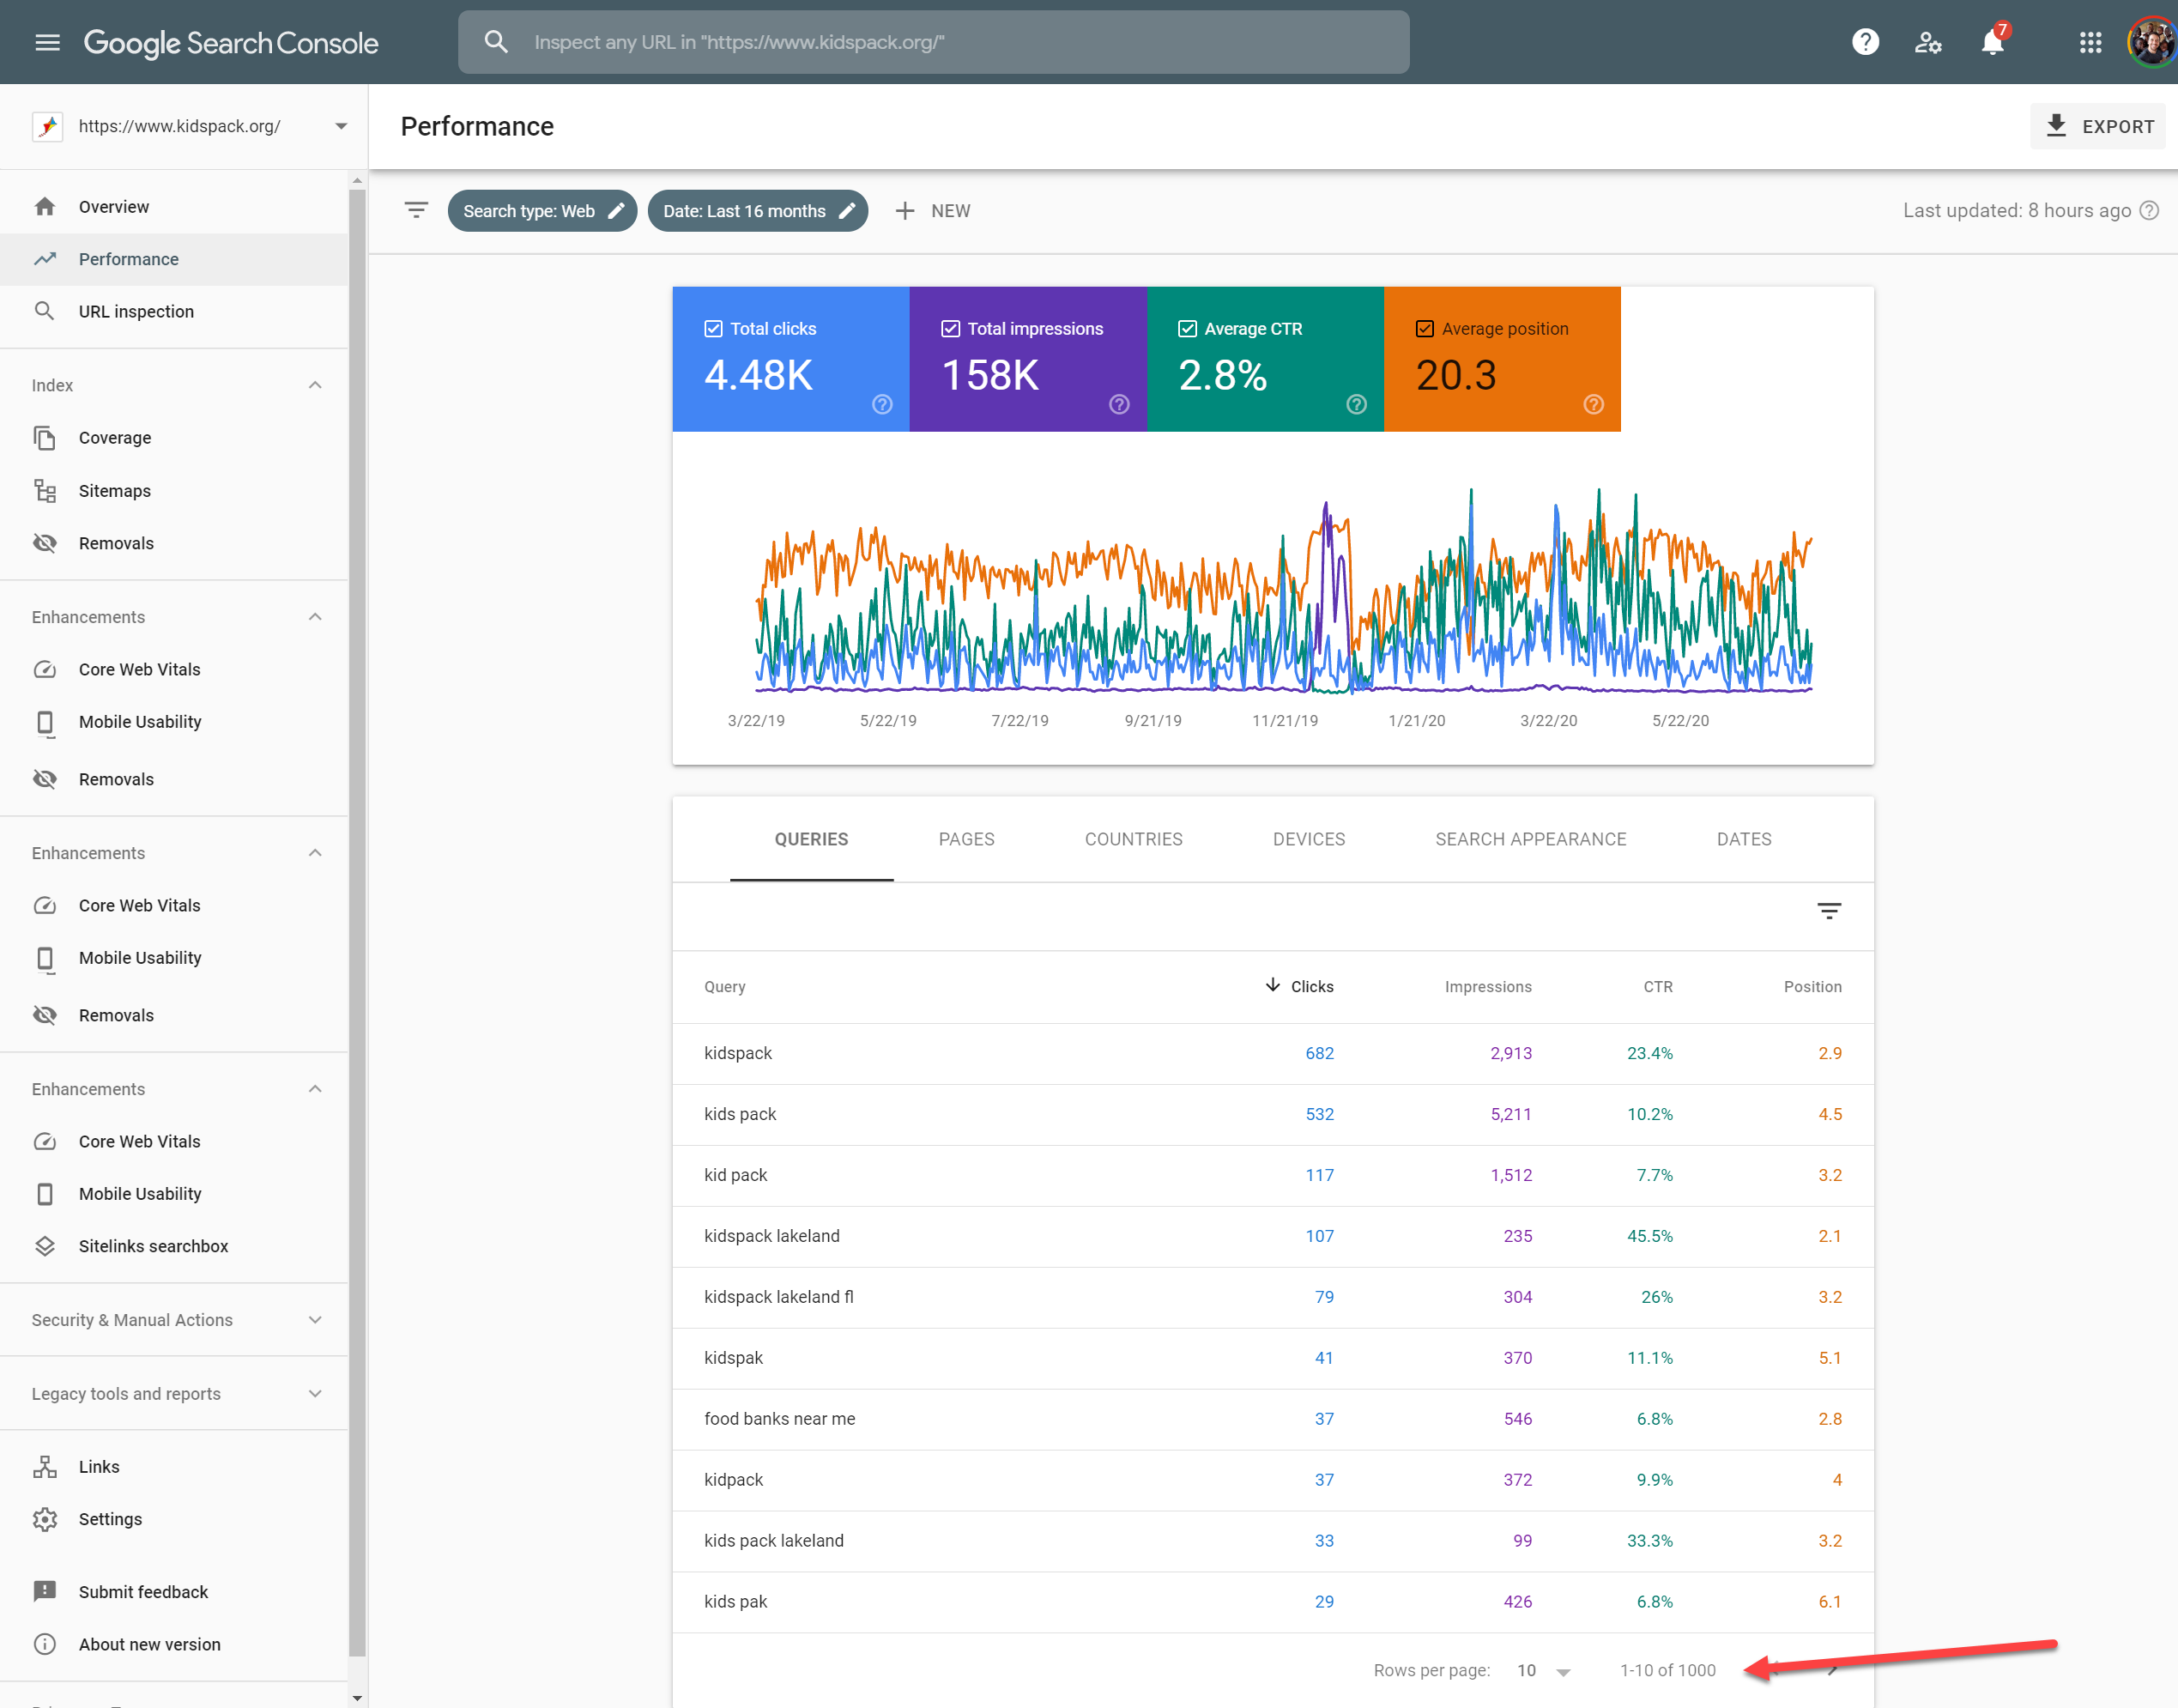 Screenshot of a Web Lakeland customer's Google Search Console data. The customer gets over 4k clicks a month. They are ranking for hundreds of keywords in Google.